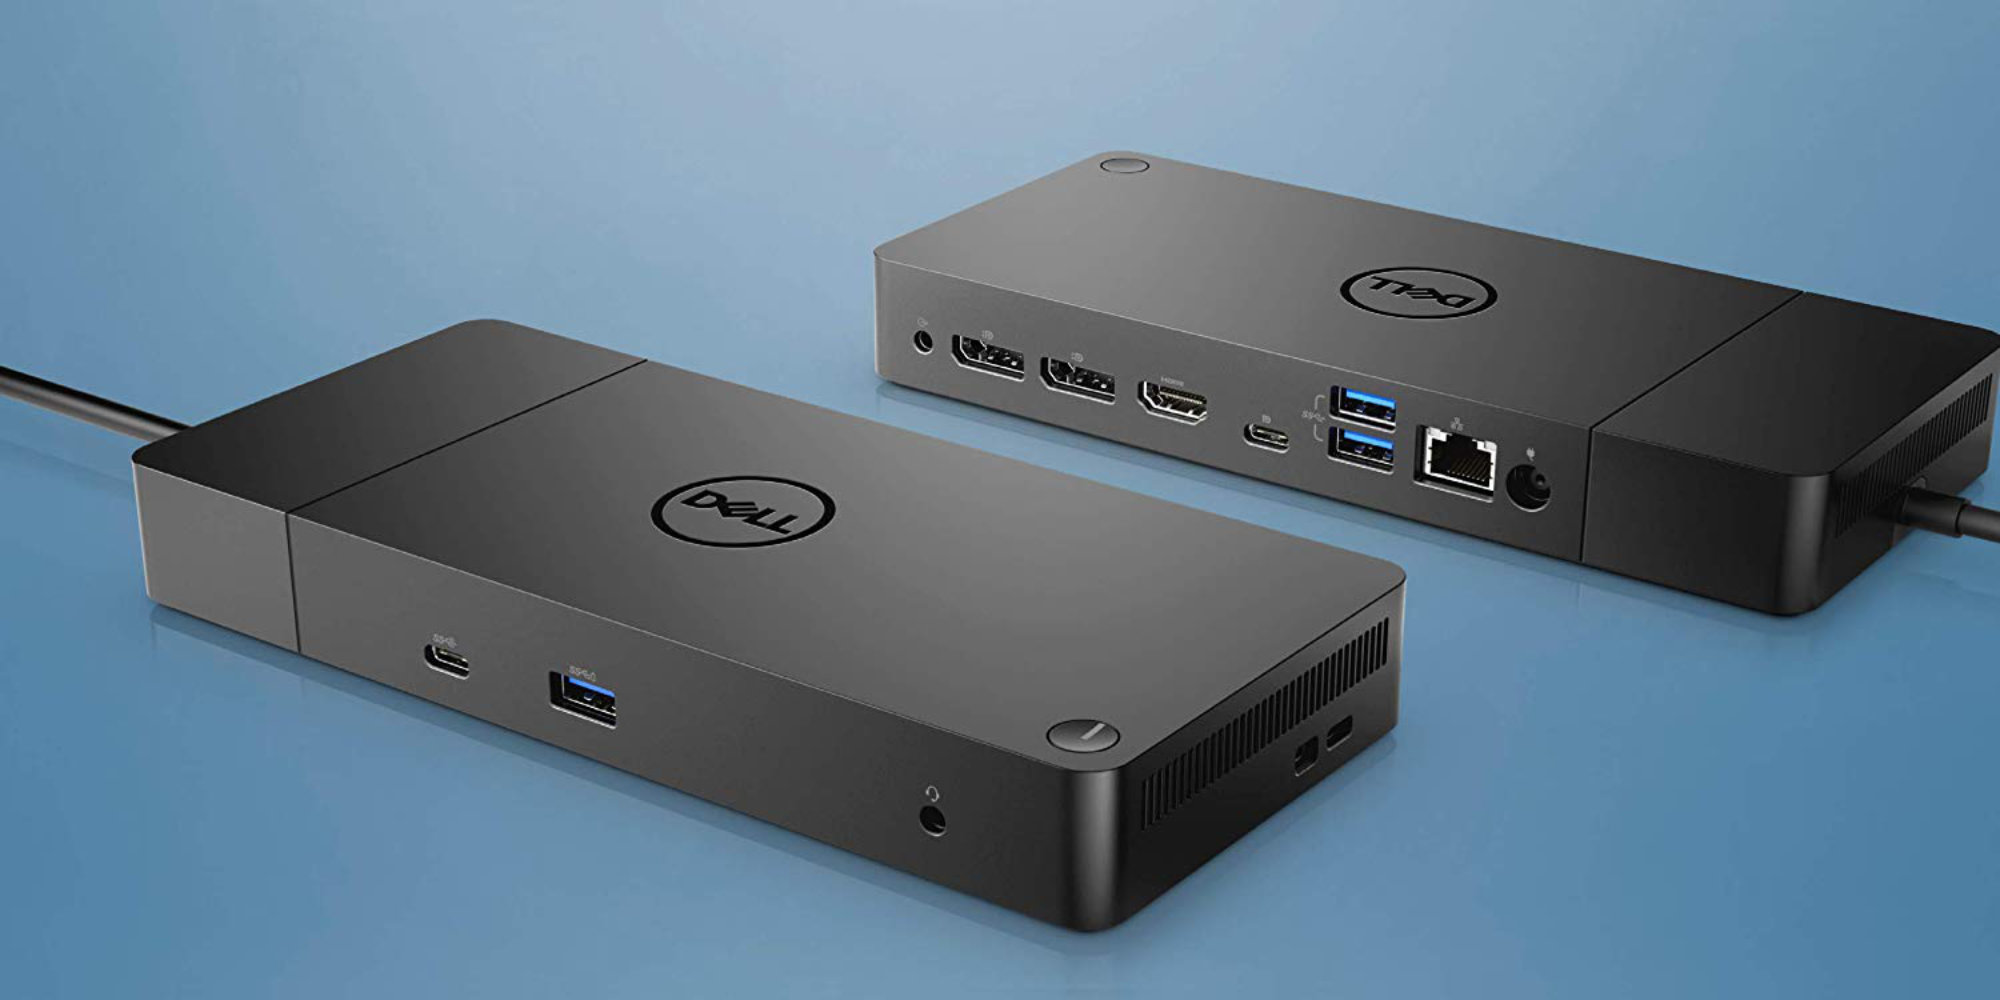 Dell S Usb C Docking Station Is Powerful With 130w Charging 171 Reg 229 9to5toys,Contemporary Modern Exterior House Colors